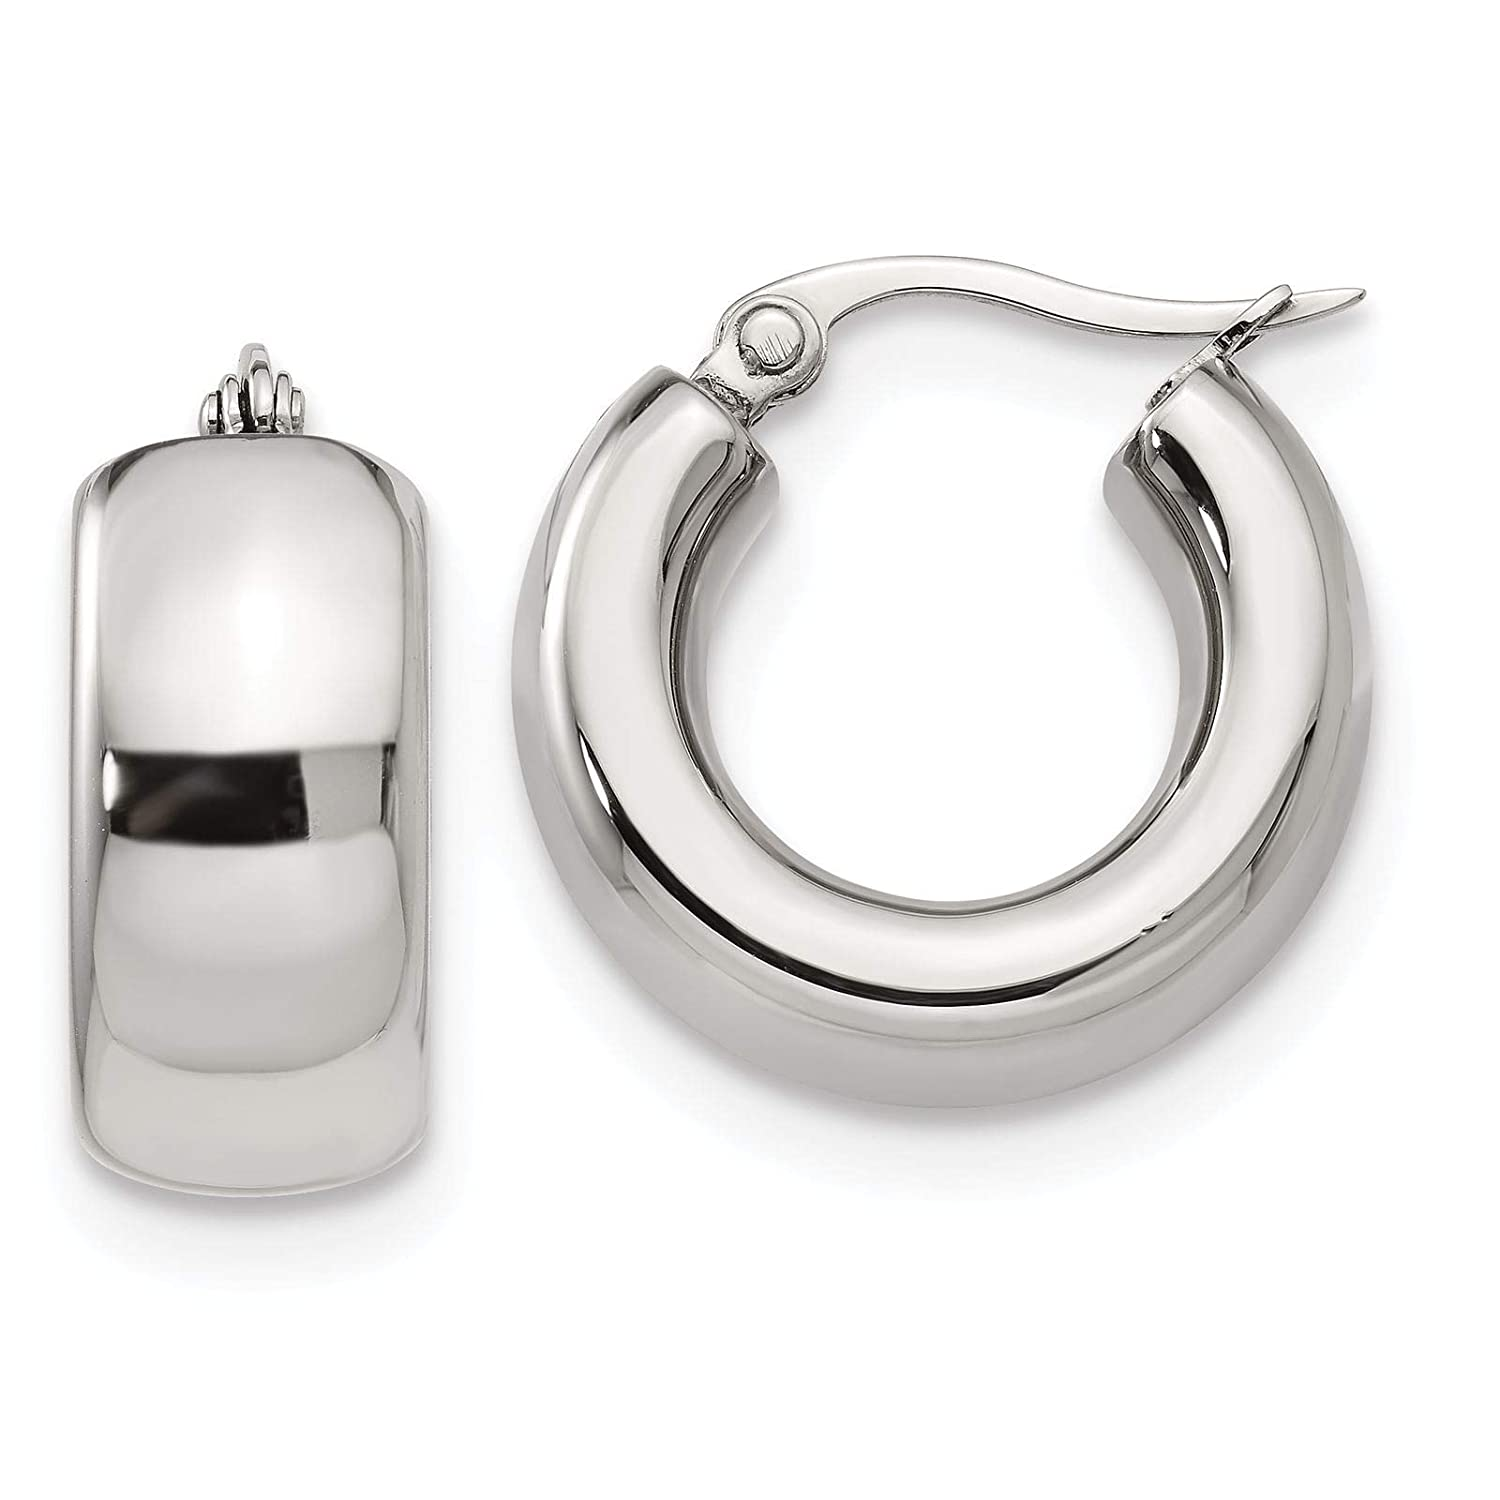 Stainless Steel Polished Round Huggie Hoop Earrings 9mm x 21mm